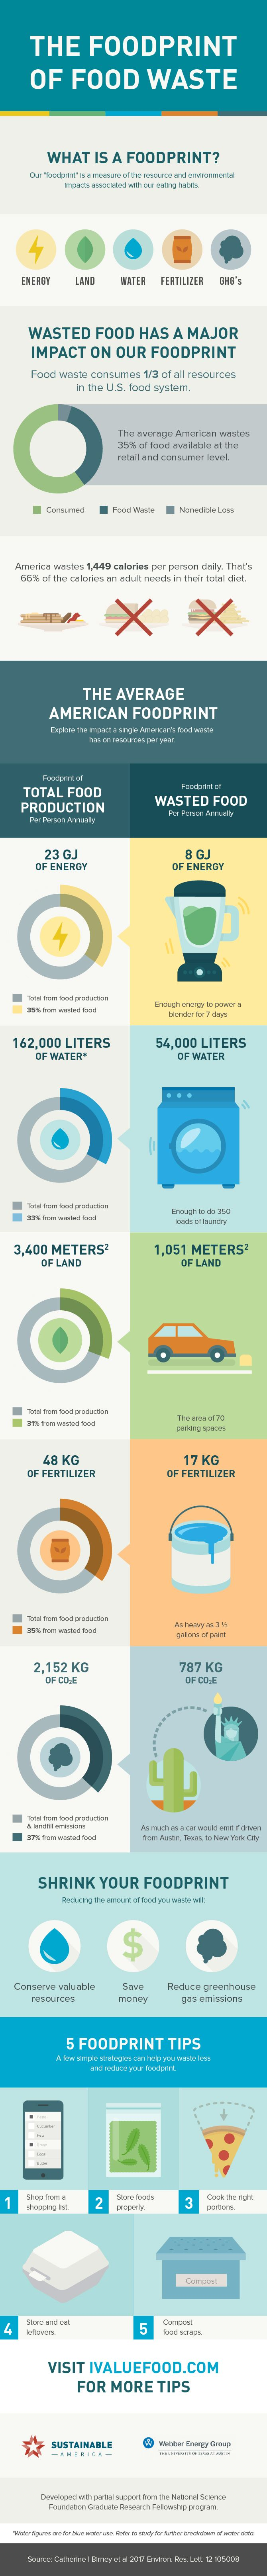 117 best Food for thought images on Pinterest | Food waste, Food for ...